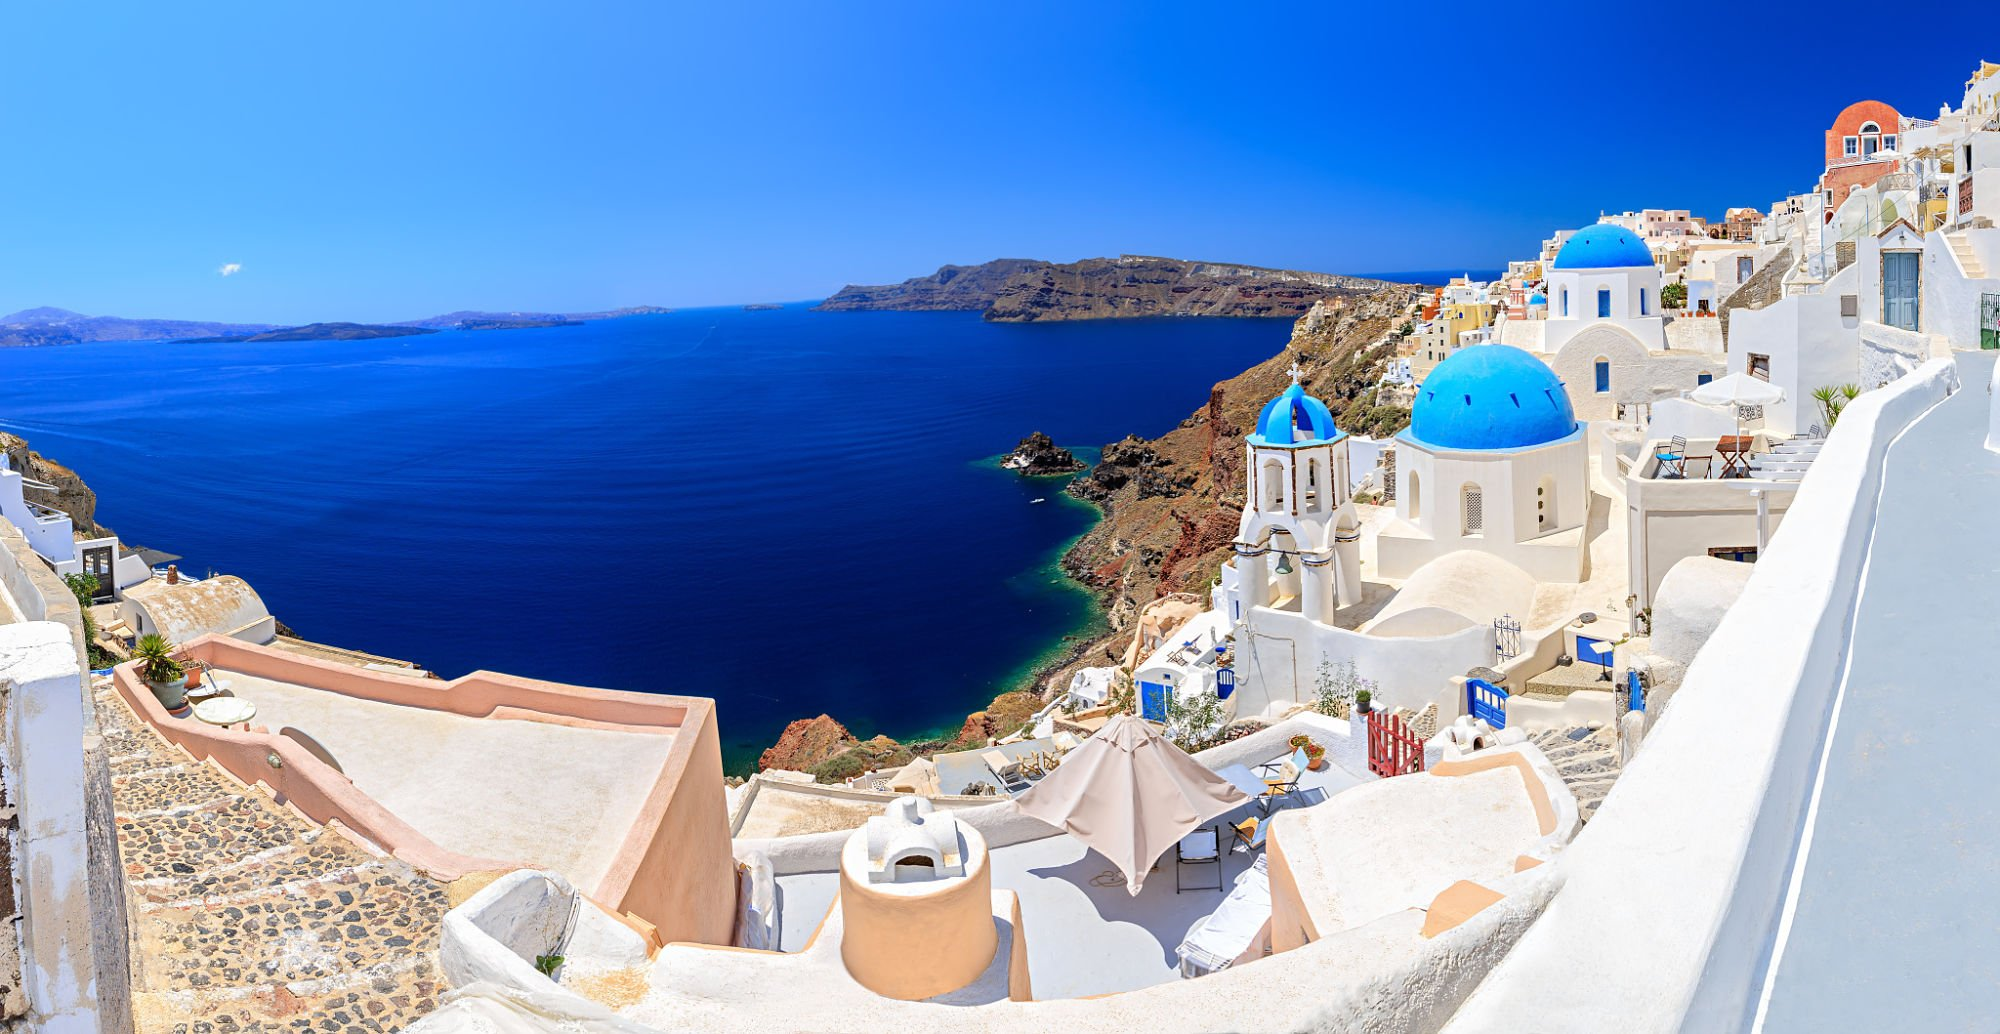 Best Island Beaches For Partying Mykonos St Barts: Luxury Sail & Motor Boat Cyclades